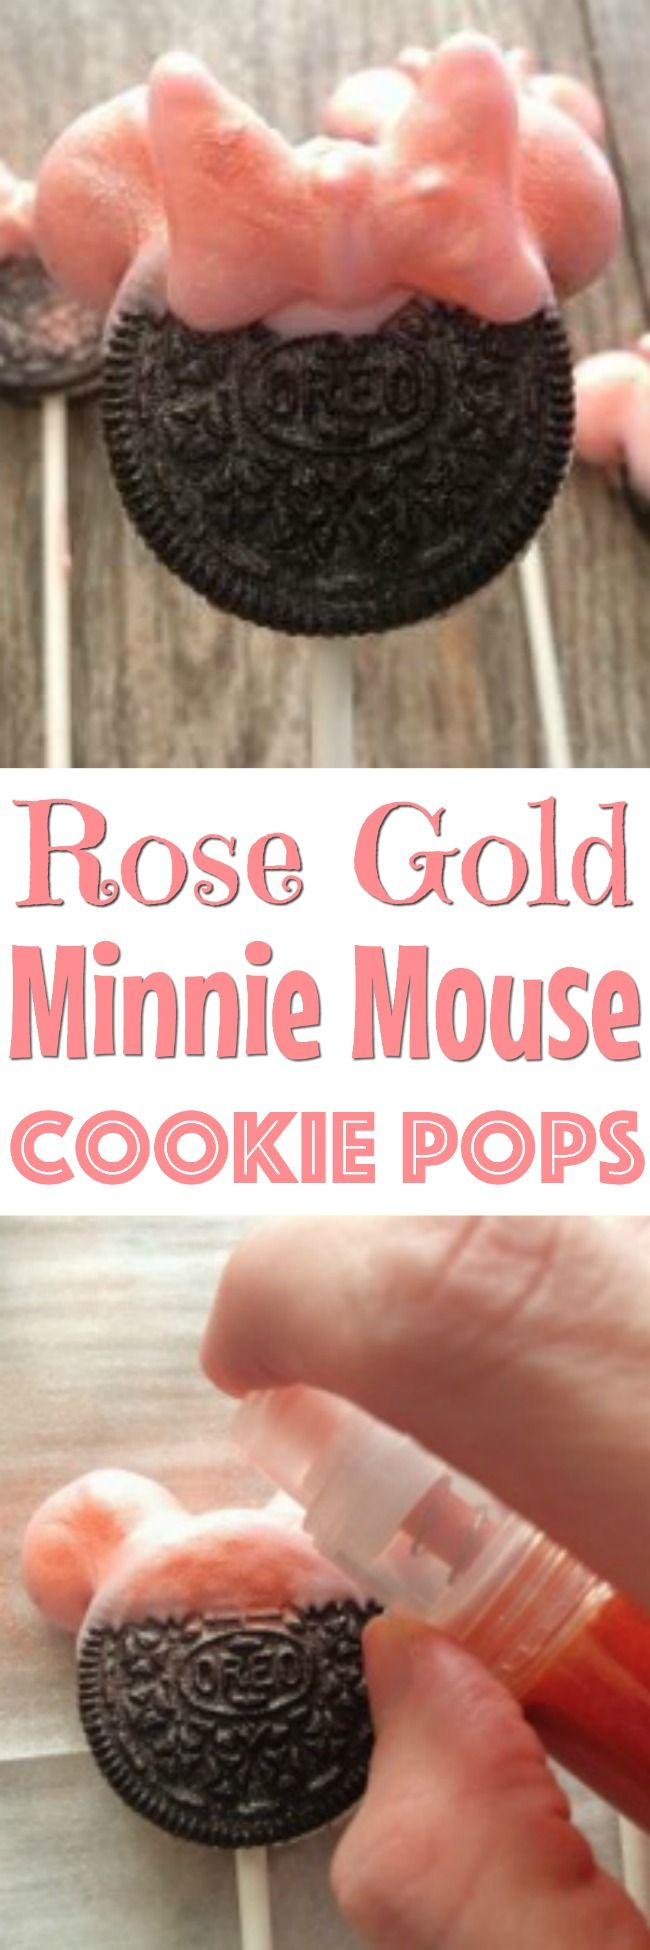 A tutorial on how to make these cute Rose Gold Minnie Mouse Ears Cookie Pops! #cookiepop #minniemouse #mickeymouse #minniemouseparty #oreos #disneyrecipe